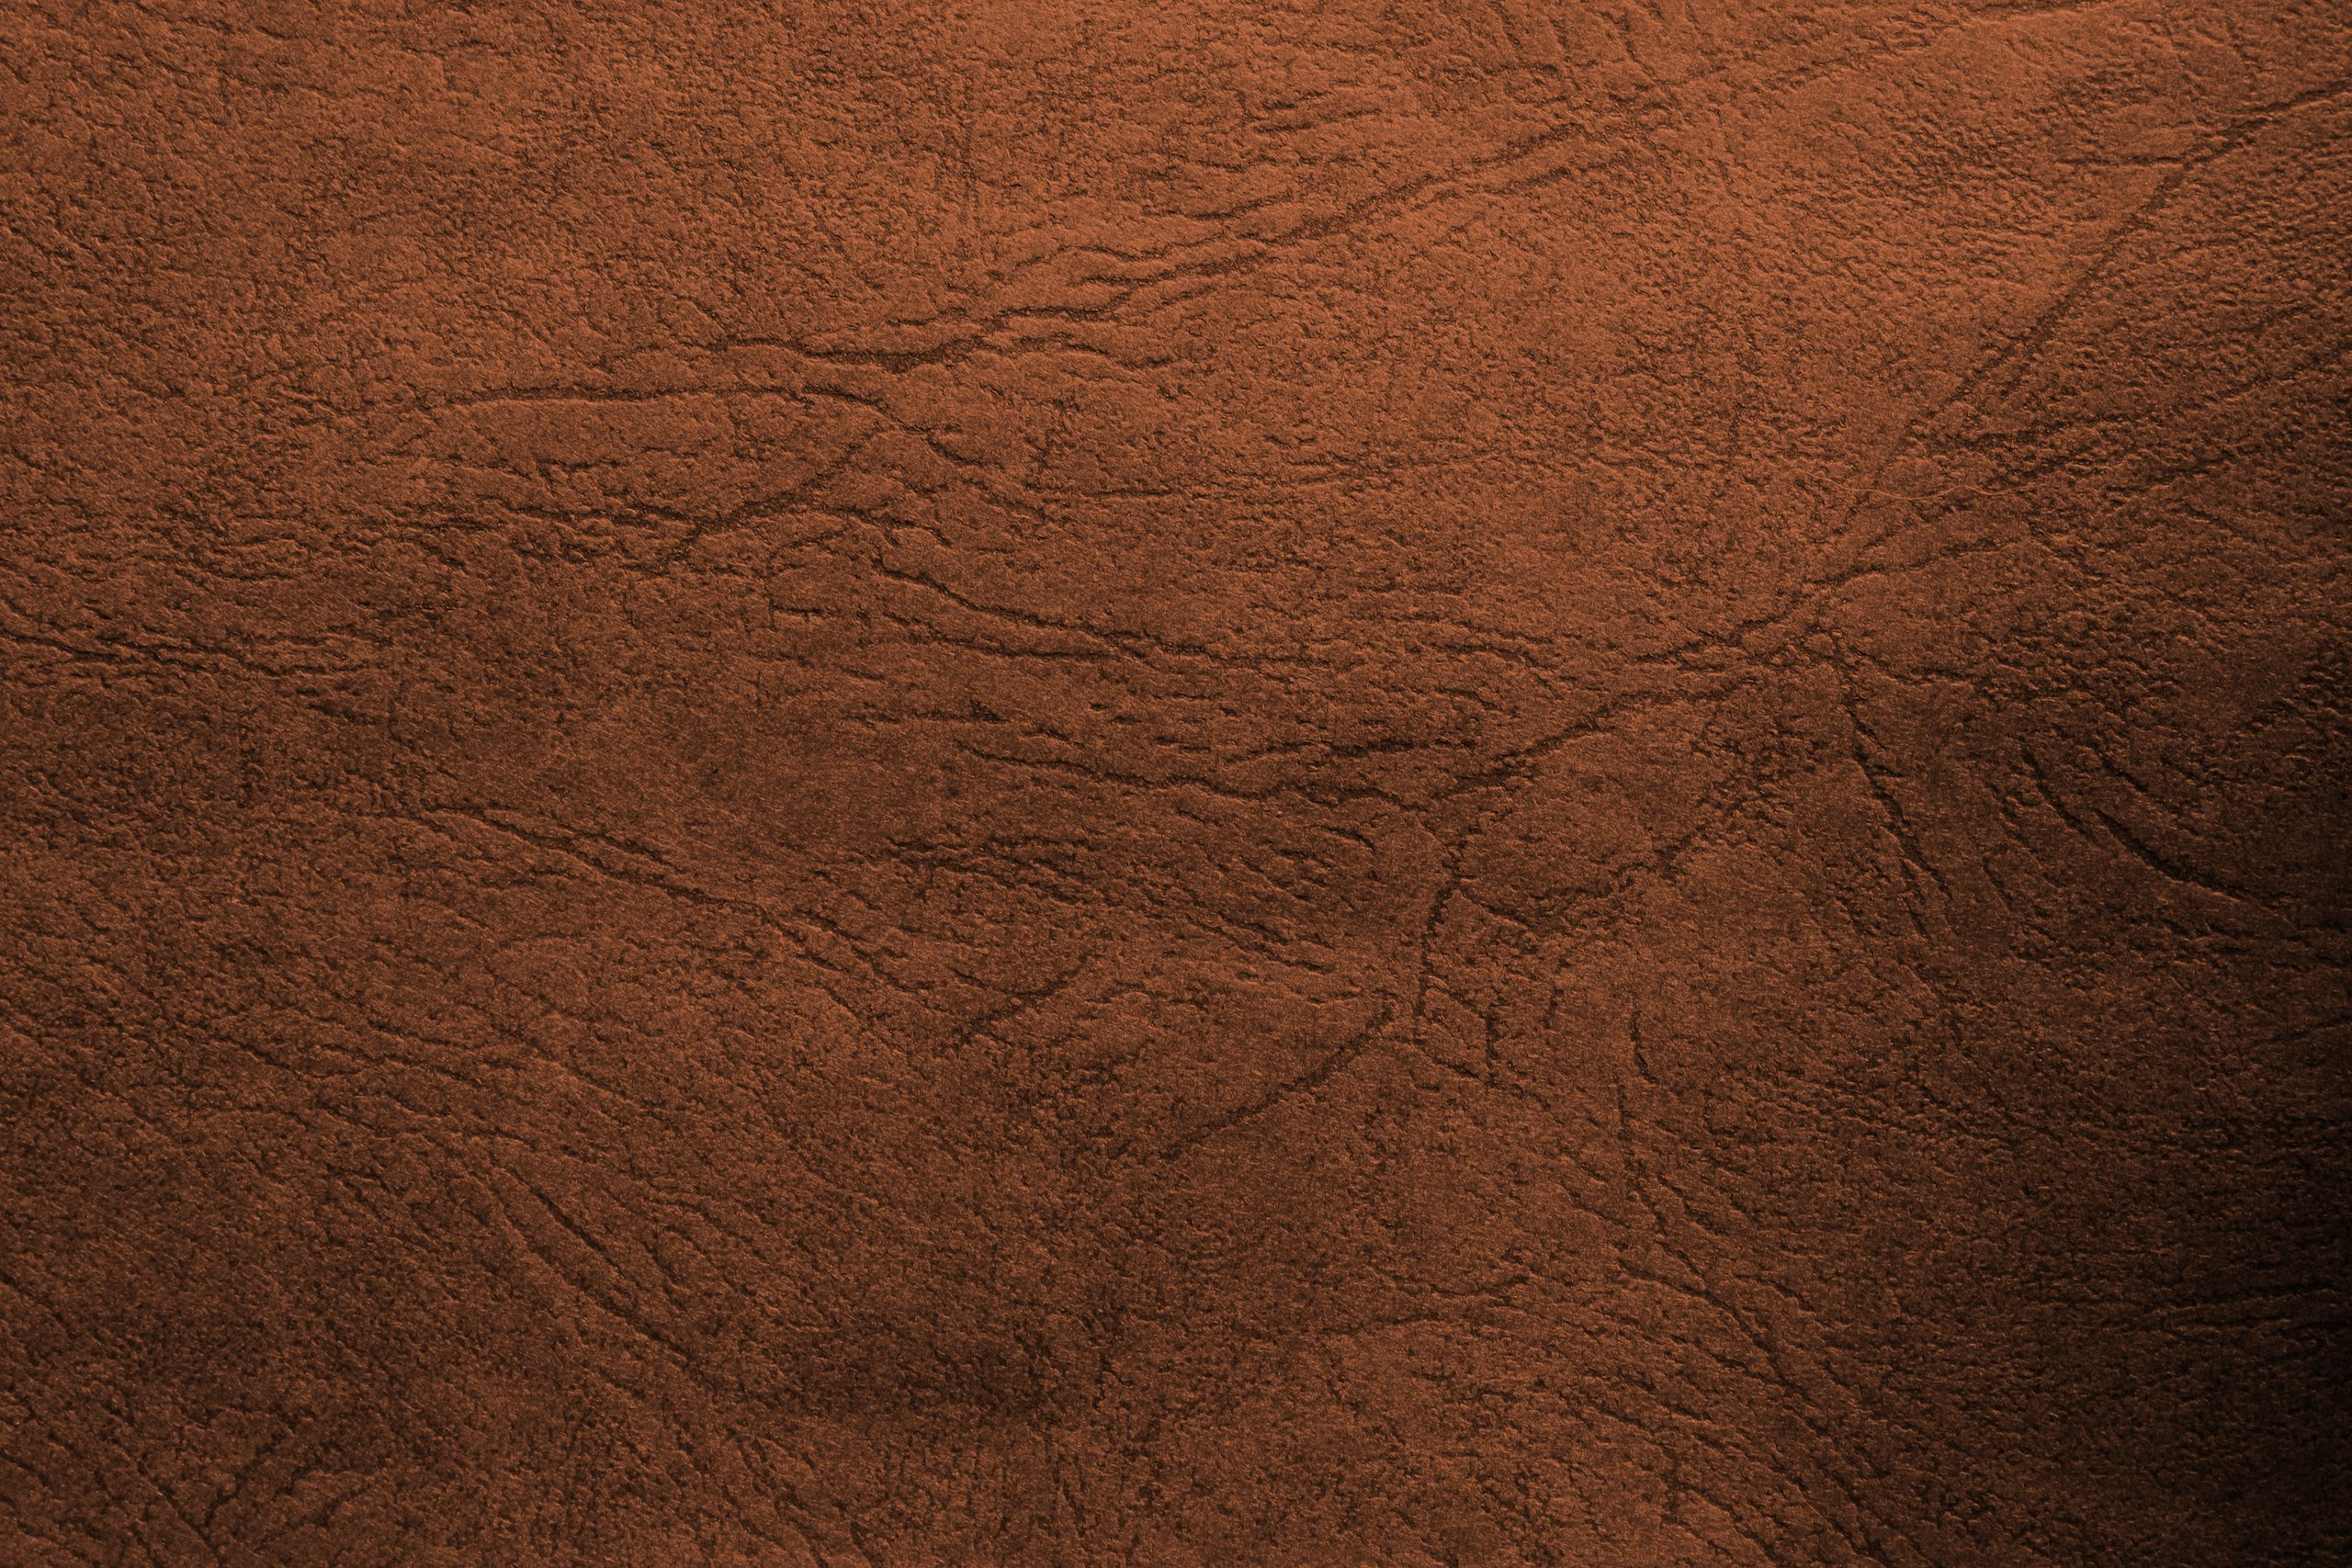 Brown Leather Wallpaper Brown Photo 28317148 Fanpop